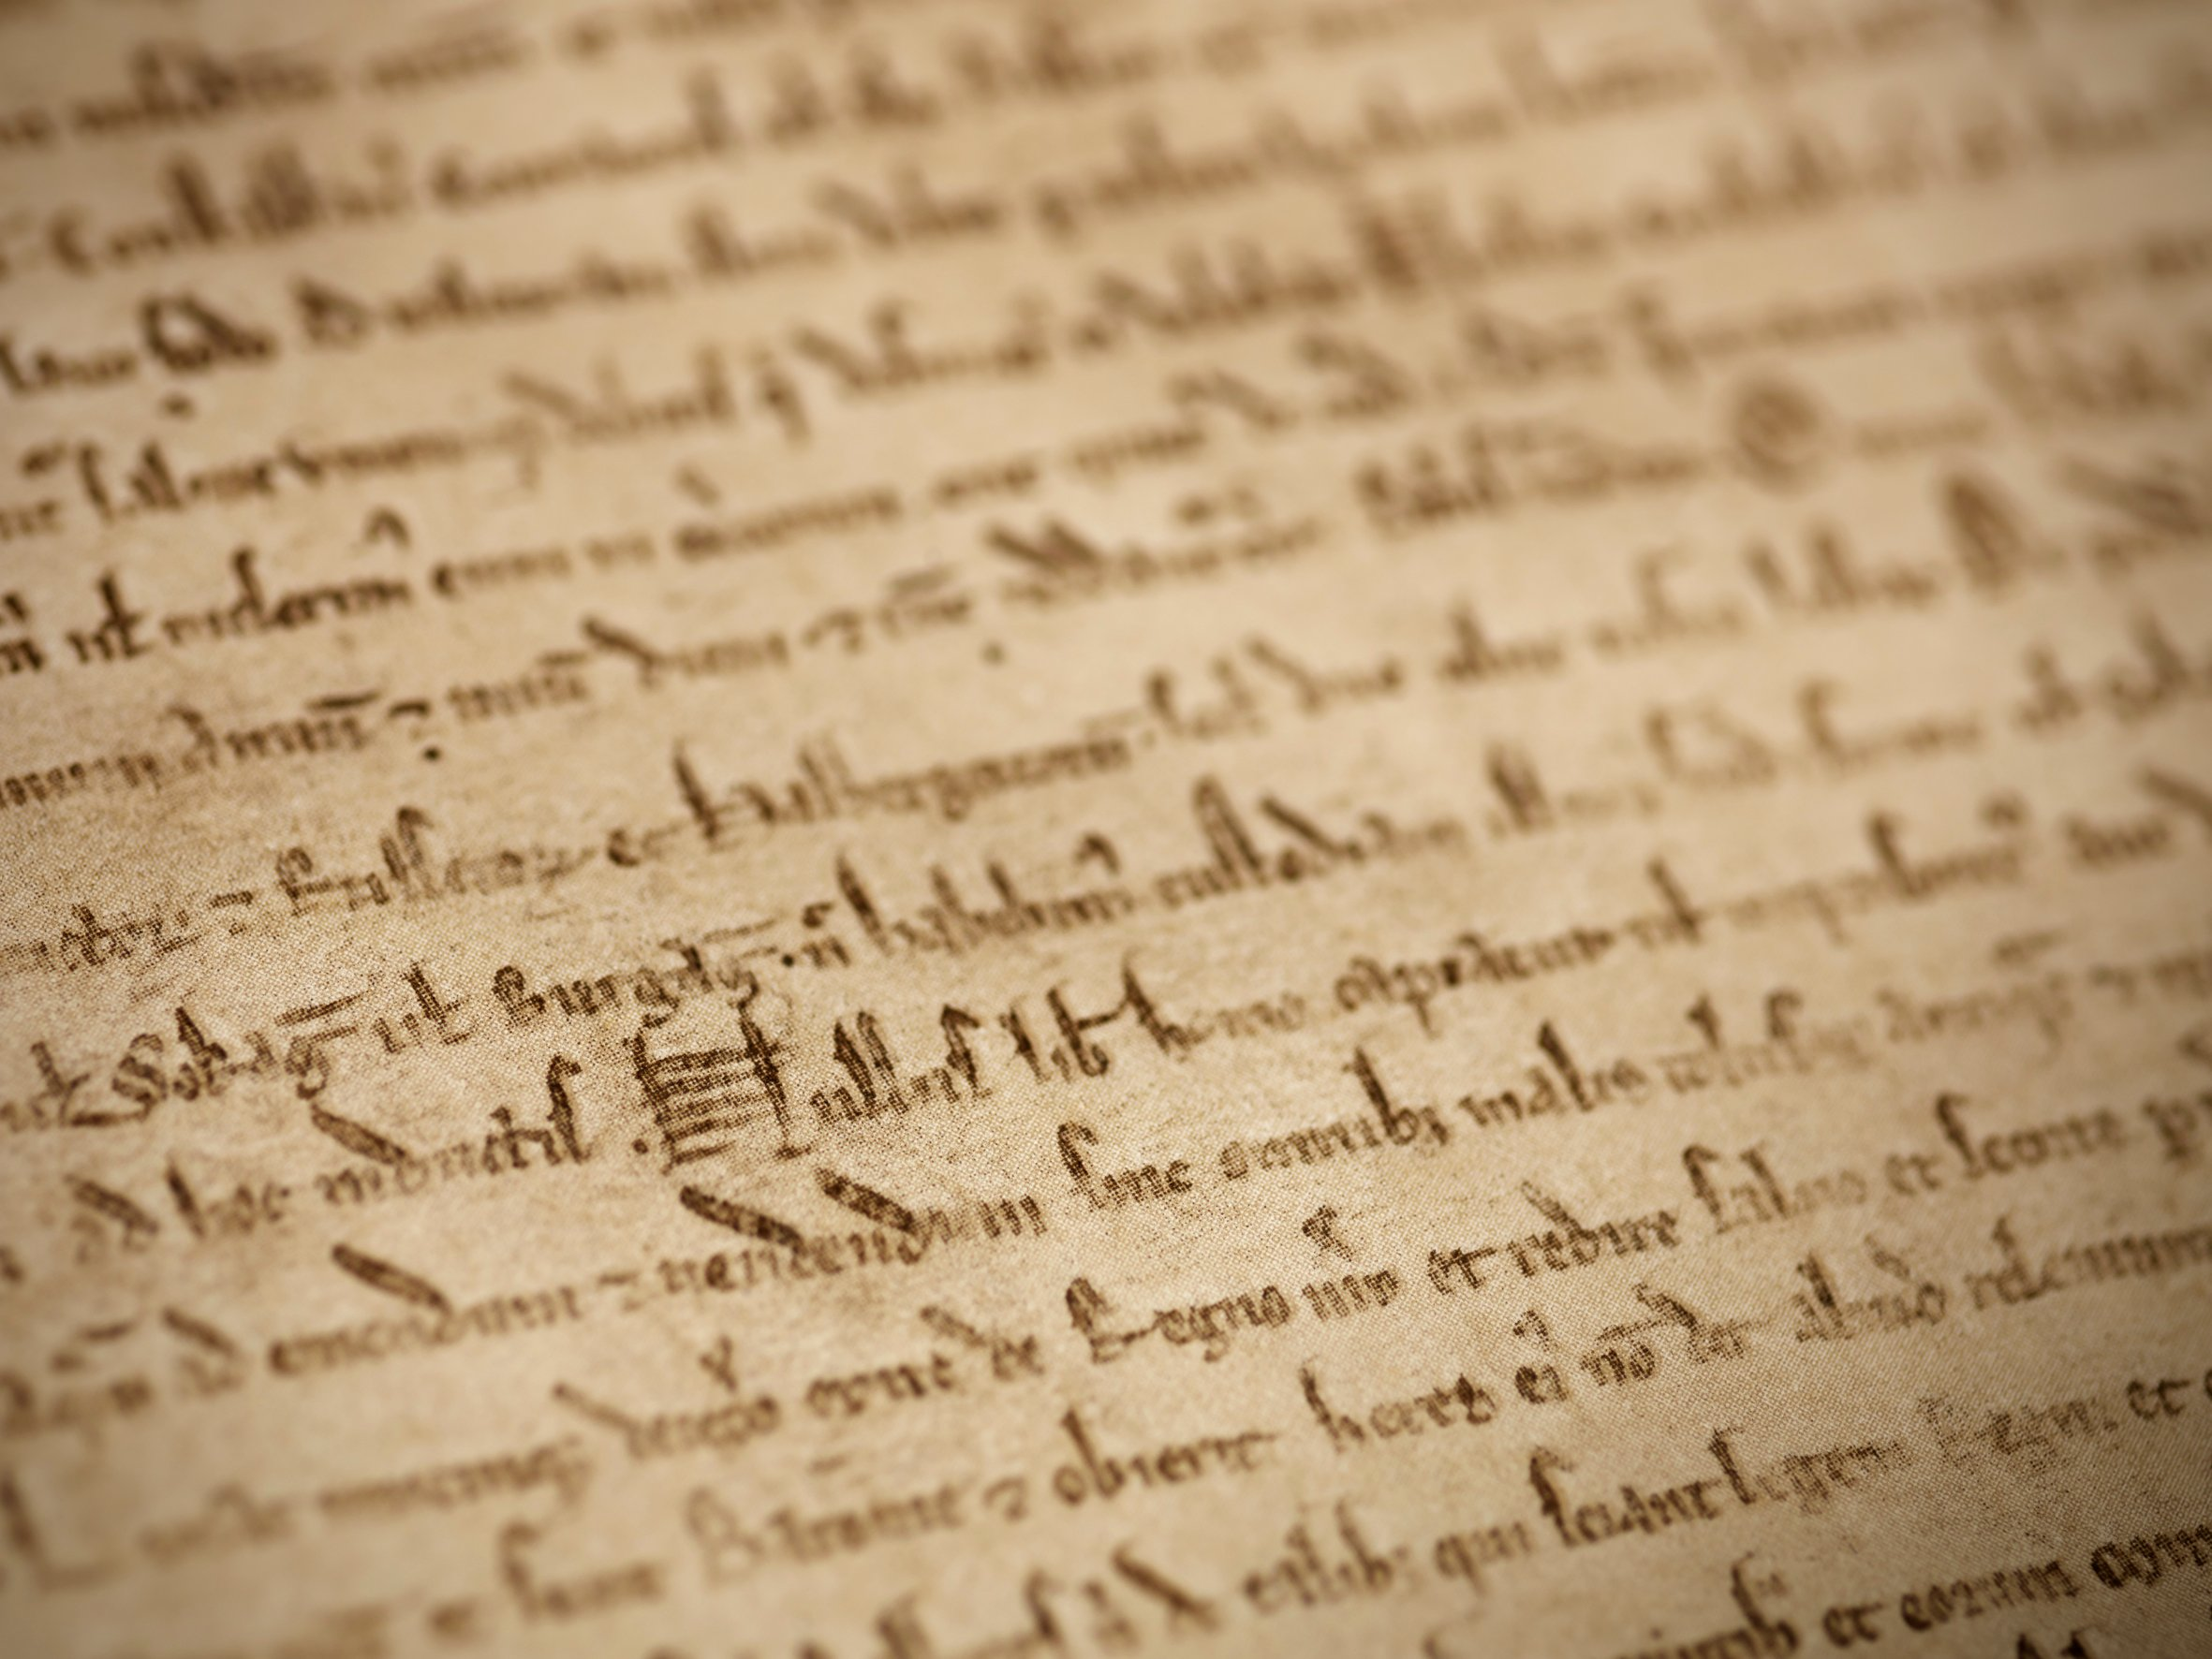 KZOO 2015: Session #42 – Magna Carta in Context